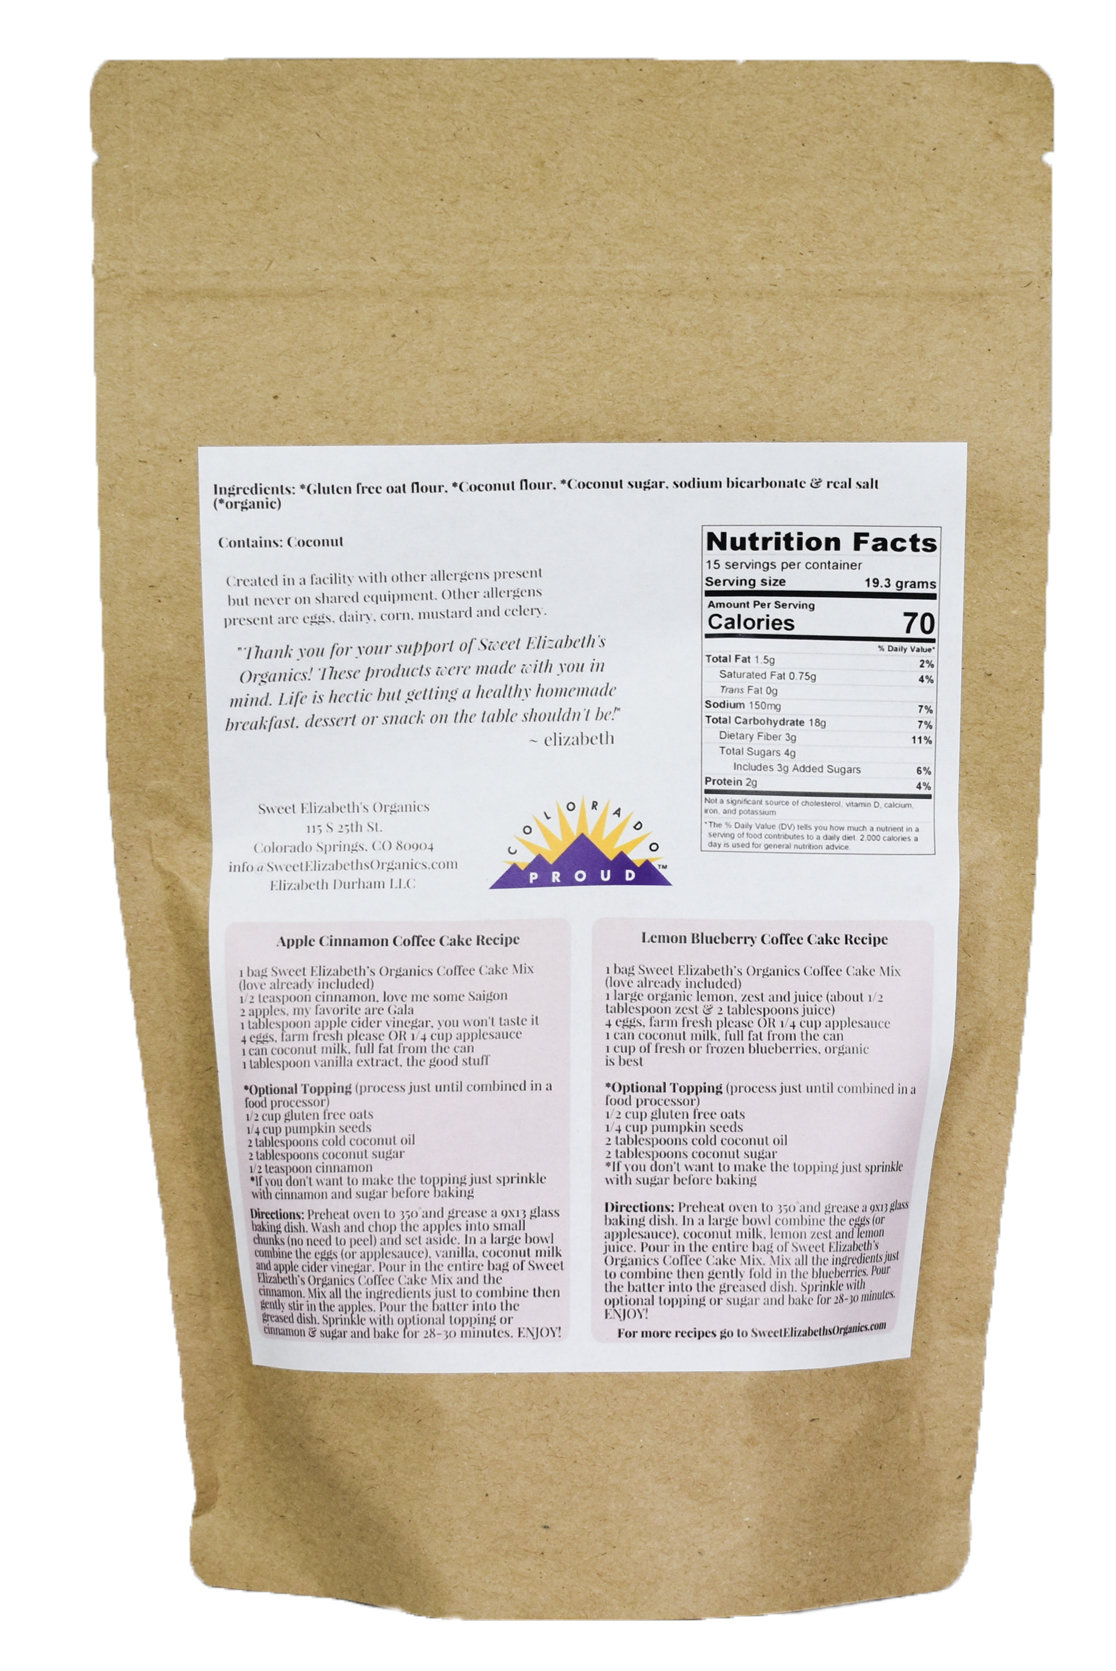 Directions and Nutrition Facts